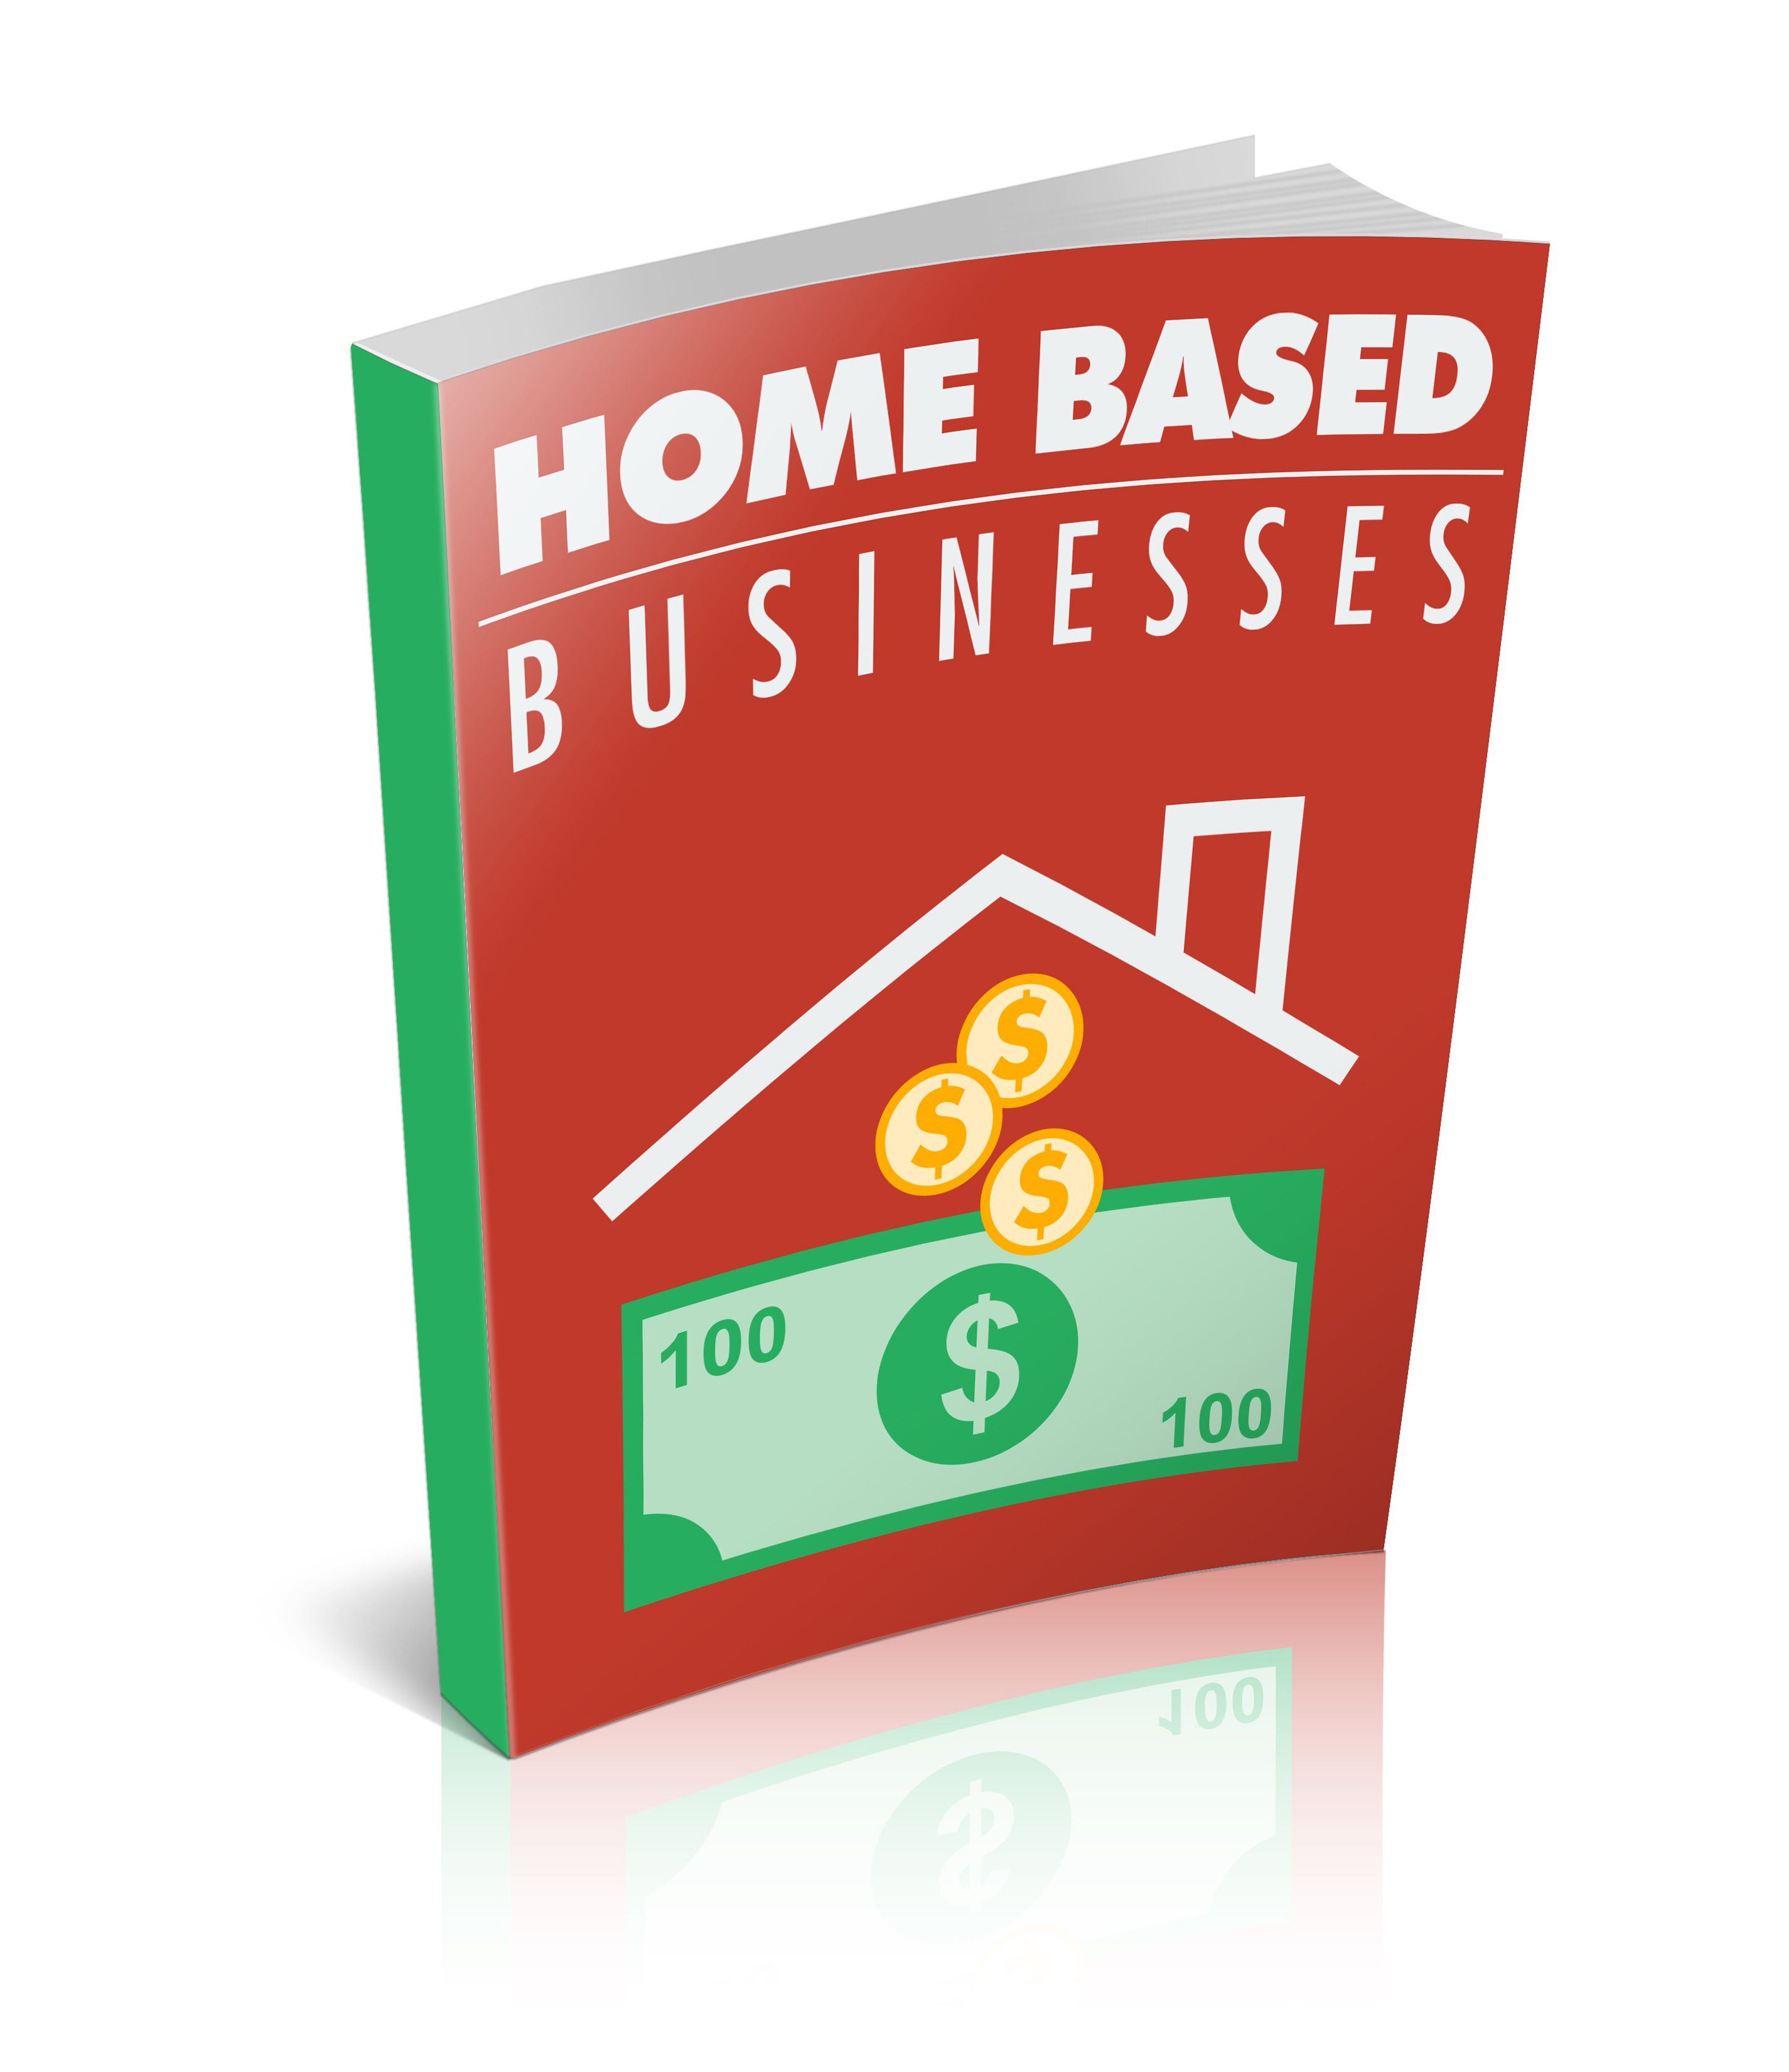 Home Based Businesses's Ebook Image